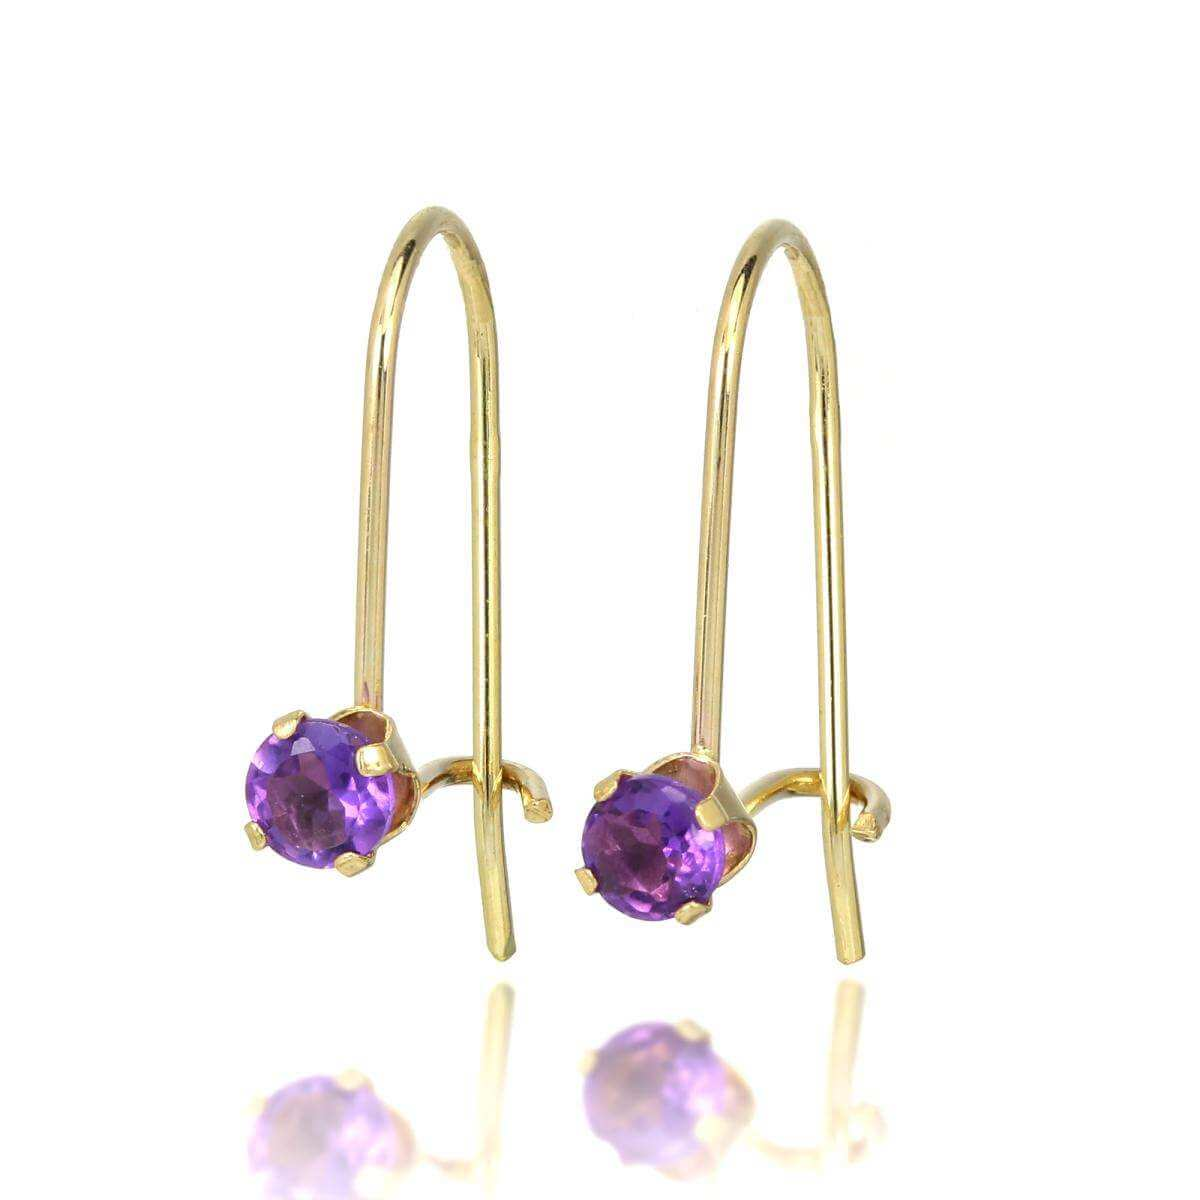 9ct Gold & 3mm Round Gemstone Leverback Earrings Amethyst